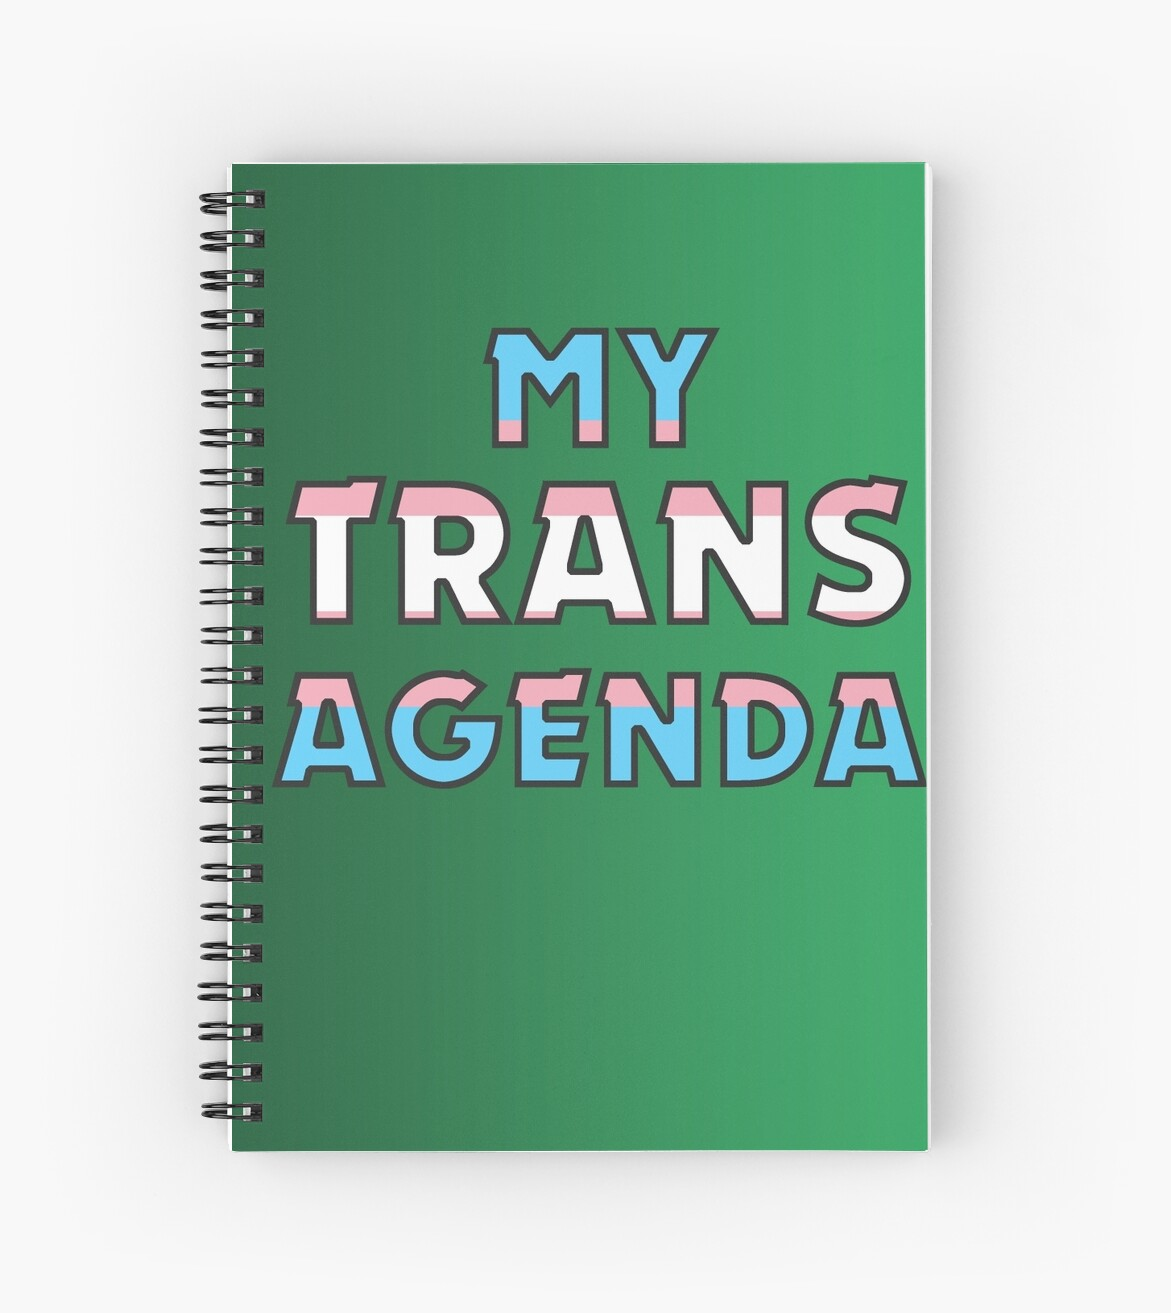 MY TRANS AGENDA by incurablehippie